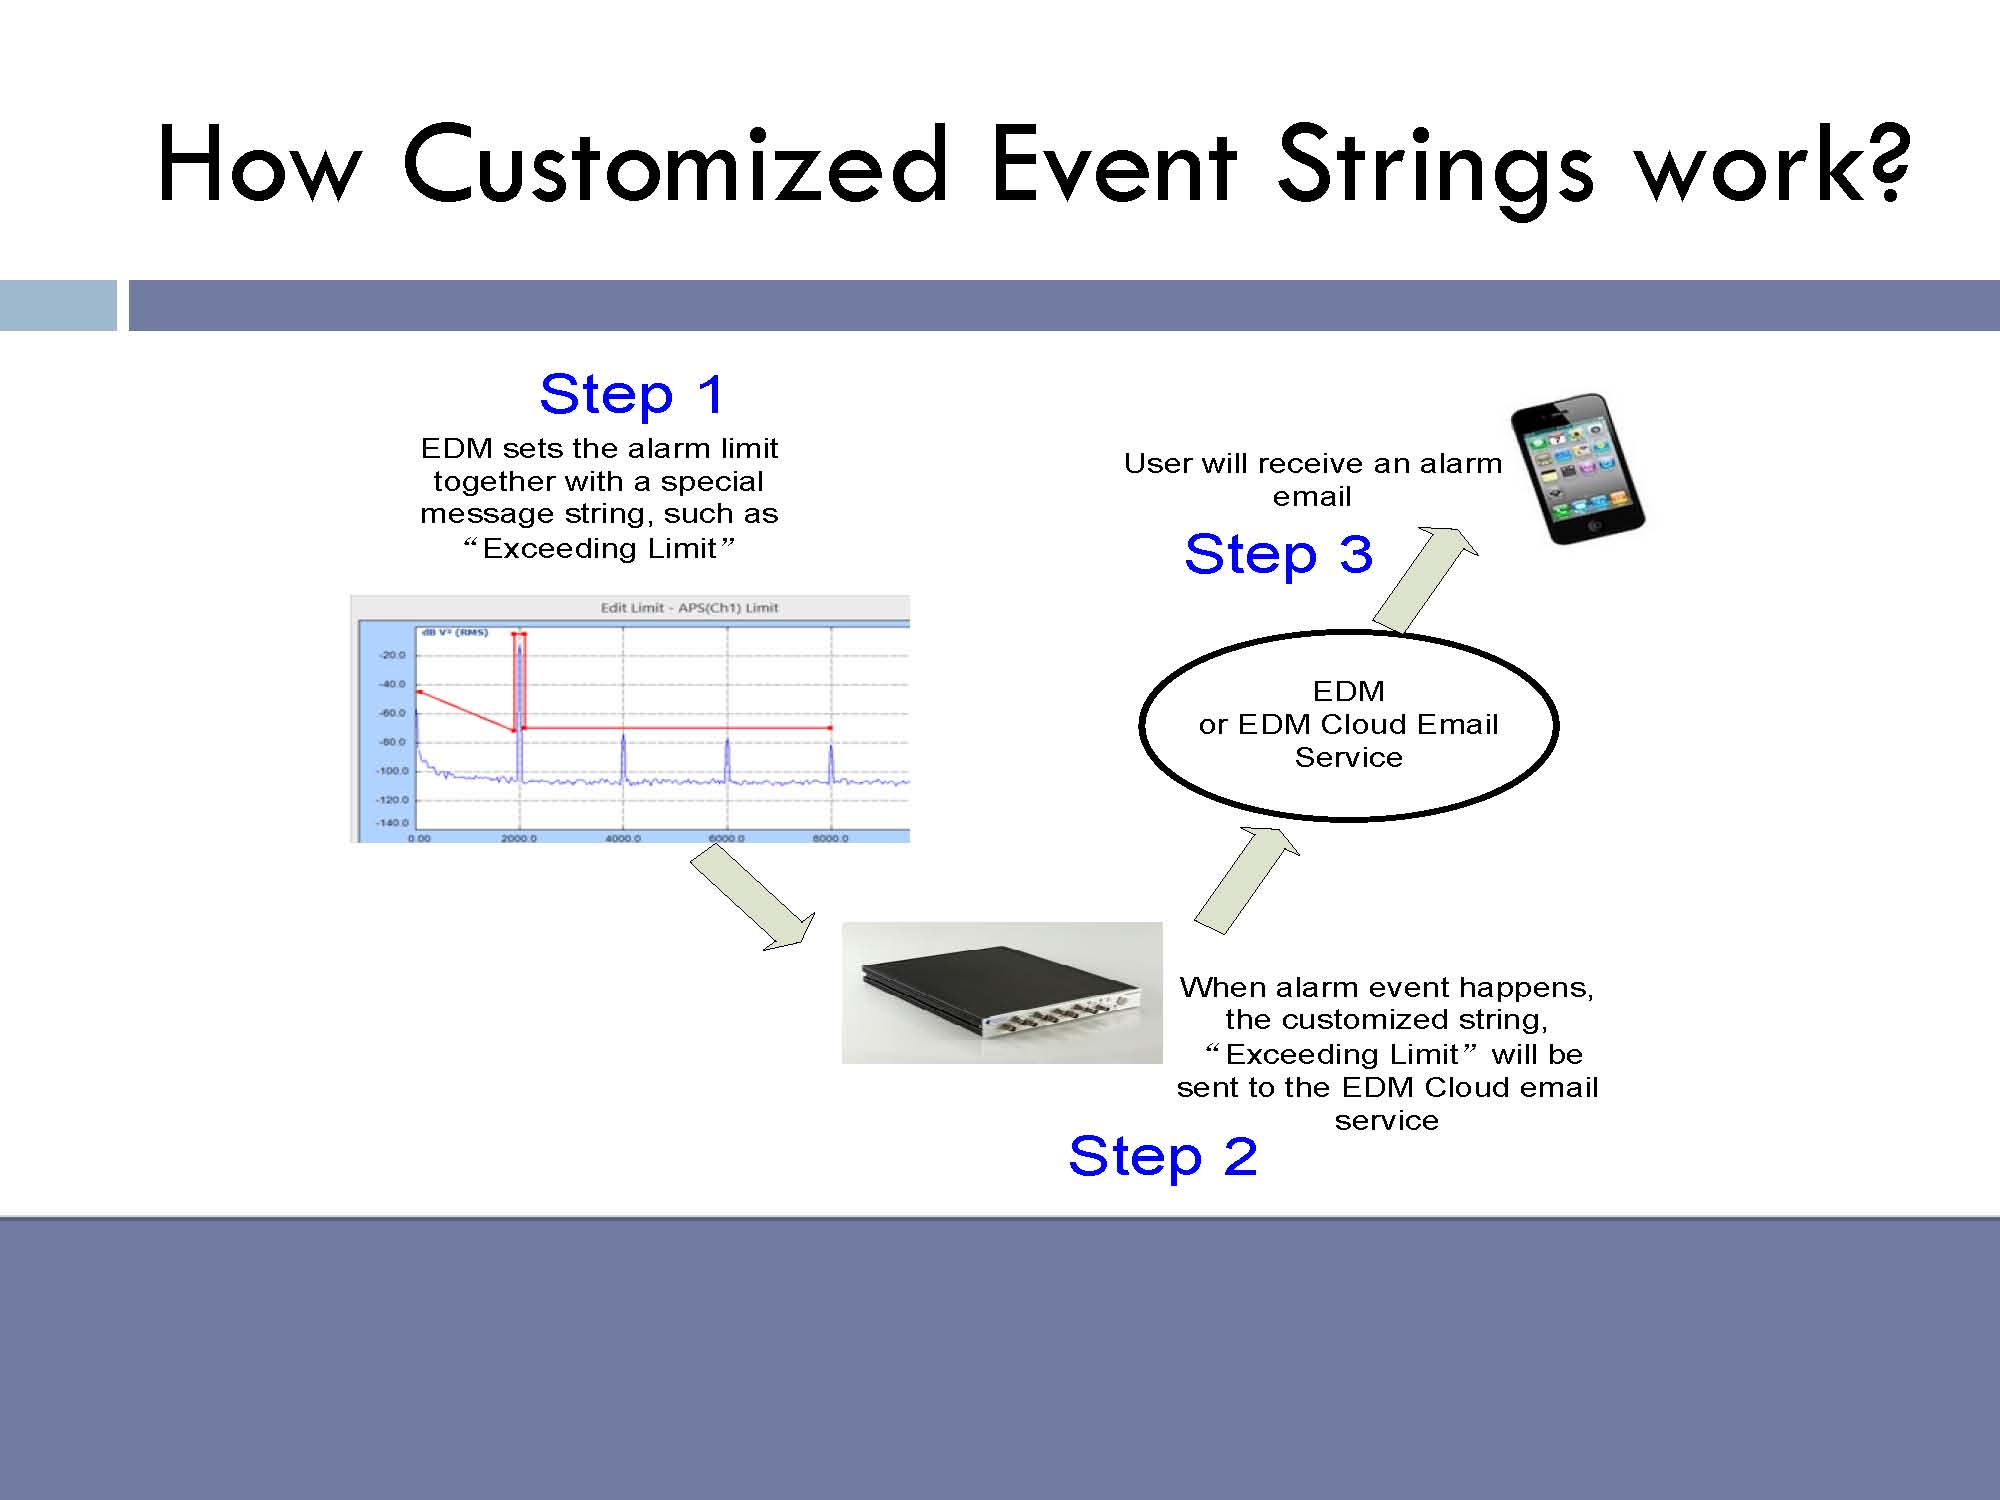 "How customized event strings work: EDM sets the alarm limit together with a special message string, such as ""exceeding limit"". When alarm event happens, the customized string, ""exceeding limit"" will be sent to the EDM Cloud email service. User will receive an alarm email.                                                                                                                                                                                                                                                                                                     /* Style Definitions */  table.MsoNormalTable 	{mso-style-name:""Table Normal""; 	mso-tstyle-rowband-size:0; 	mso-tstyle-colband-size:0; 	mso-style-noshow:yes; 	mso-style-priority:99; 	mso-style-qformat:yes; 	mso-style-parent:""""; 	mso-padding-alt:0in 5.4pt 0in 5.4pt; 	mso-para-margin-top:0in; 	mso-para-margin-right:0in; 	mso-para-margin-bottom:10.0pt; 	mso-para-margin-left:0in; 	line-height:115%; 	mso-pagination:widow-orphan; 	font-size:11.0pt; 	font-family:""Calibri"",""sans-serif""; 	mso-ascii-font-family:Calibri; 	mso-ascii-theme-font:minor-latin; 	mso-hansi-font-family:Calibri; 	mso-hansi-theme-font:minor-latin;}"